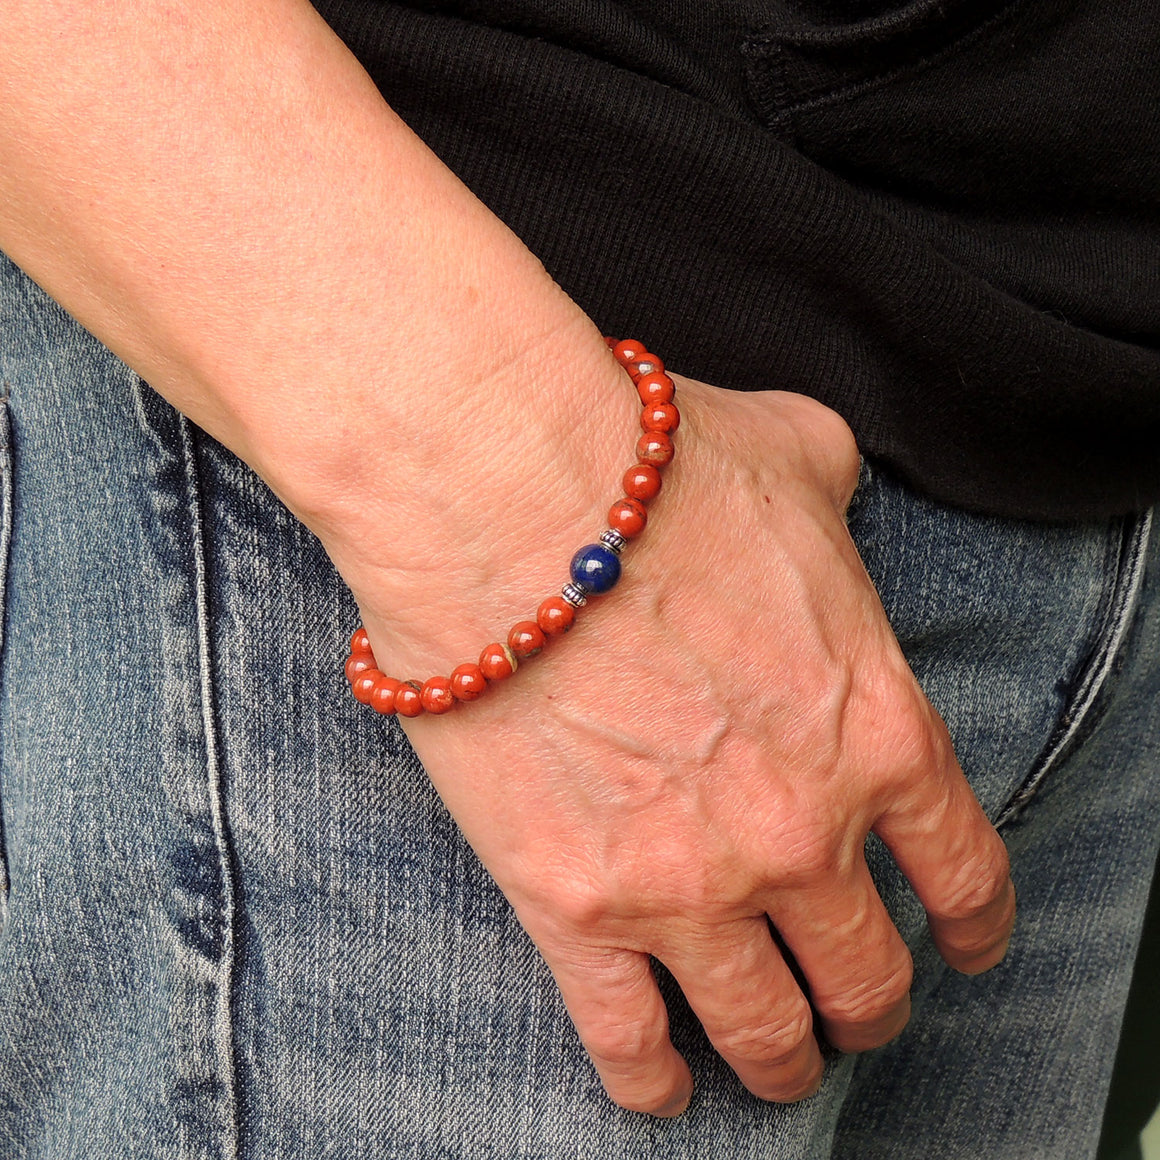 Handmade Yoga Jewelry Adjustable Braided Bracelet - Men's Women's Compassion, Protection with Natural Healing Gemstones Red Jasper, Lapis Lazuli, Genuine Non-Plated Sterling Silver BR1834